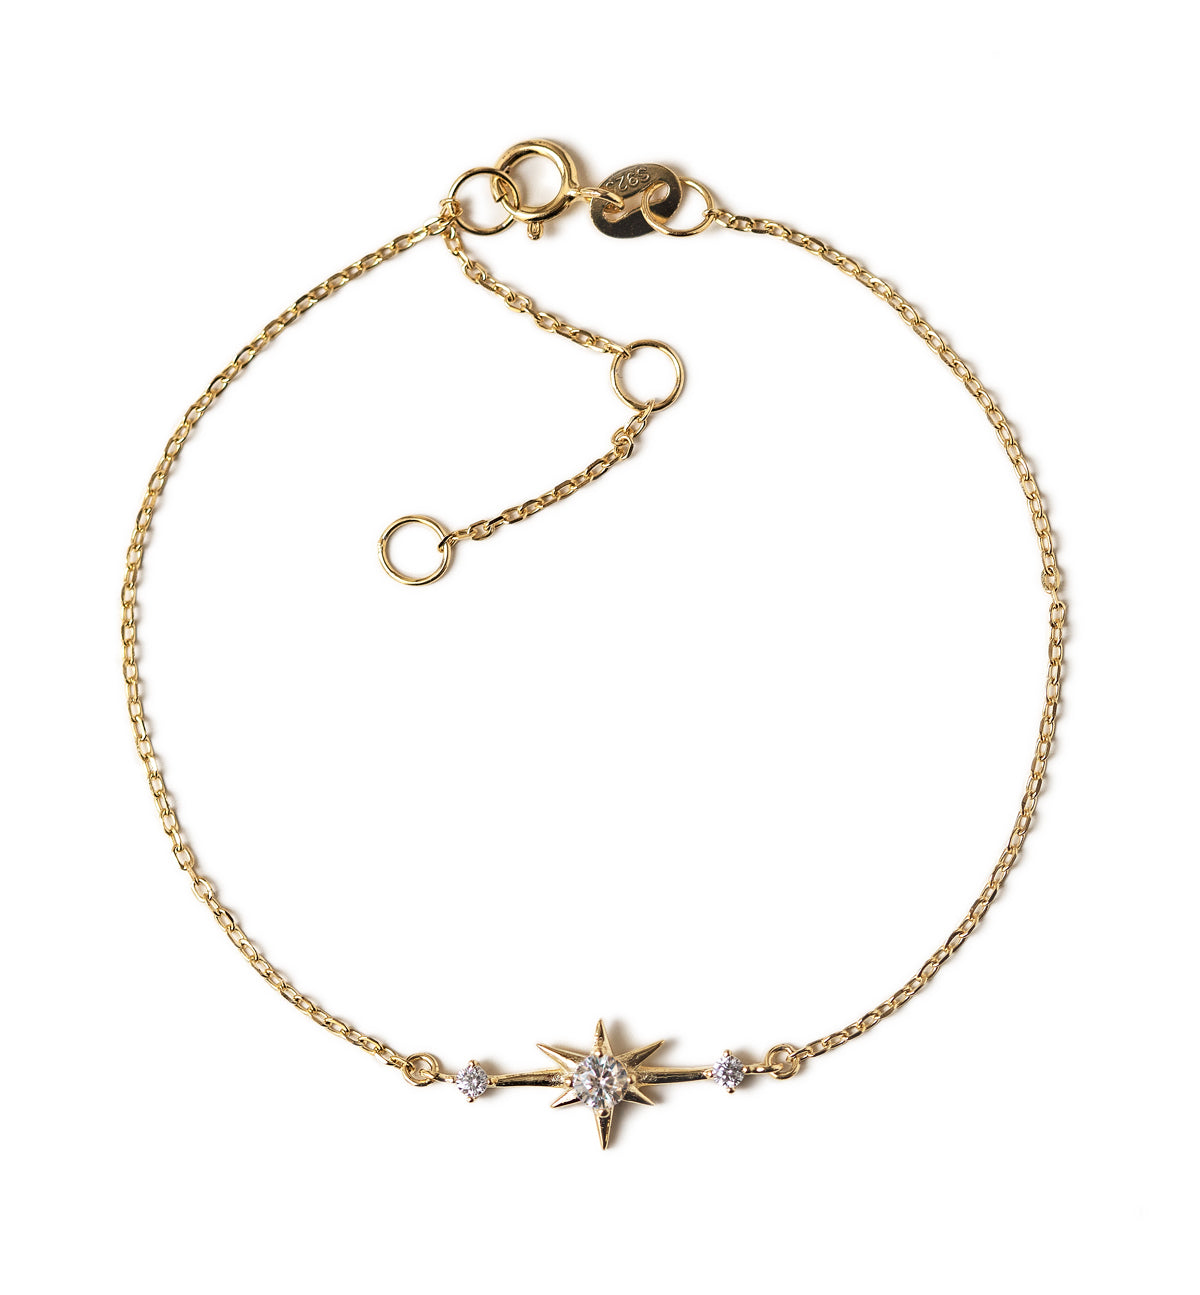 Dainty Star Charm Bracelet with CZ Crystals